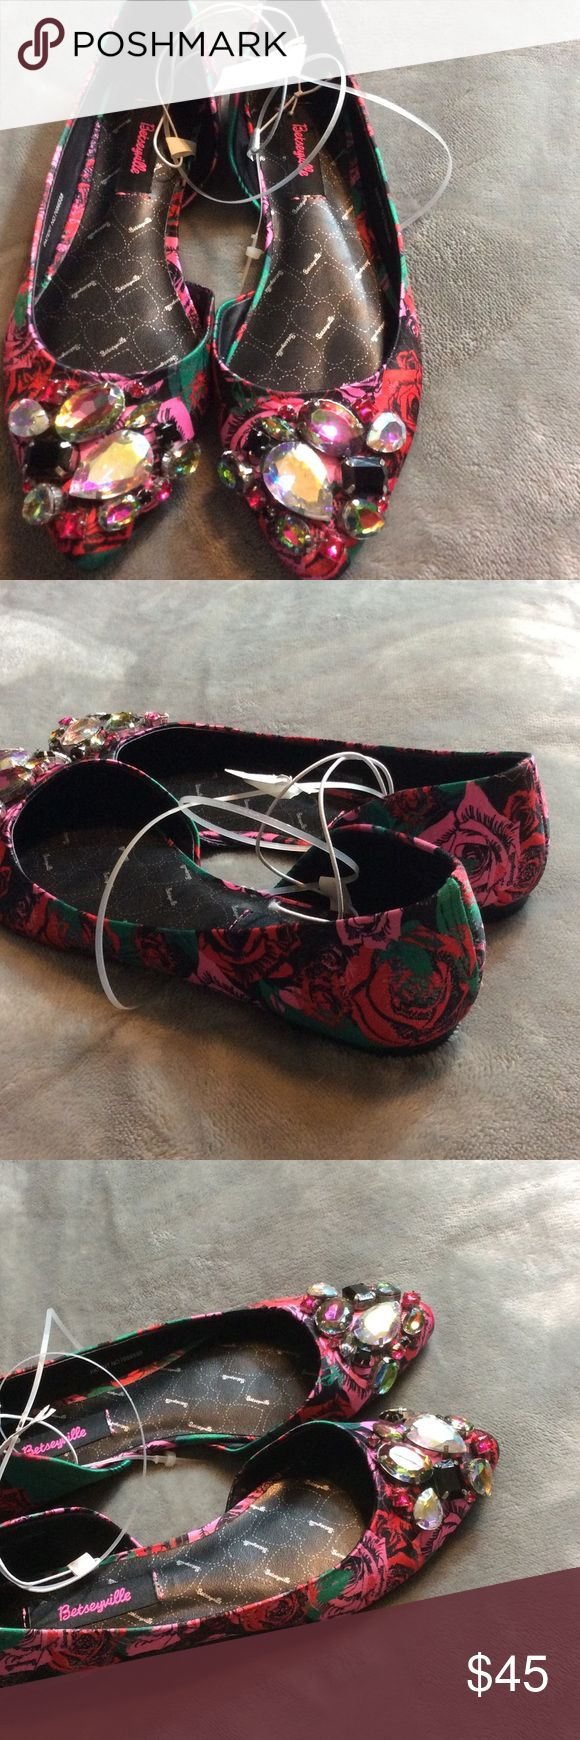 Betsyville floral print ballet flats NWT SZ 7 Betsyville floral ballet flats with rhinestones. Size 7. New with tags. Betsey Johnson Shoes Flats & Loafers